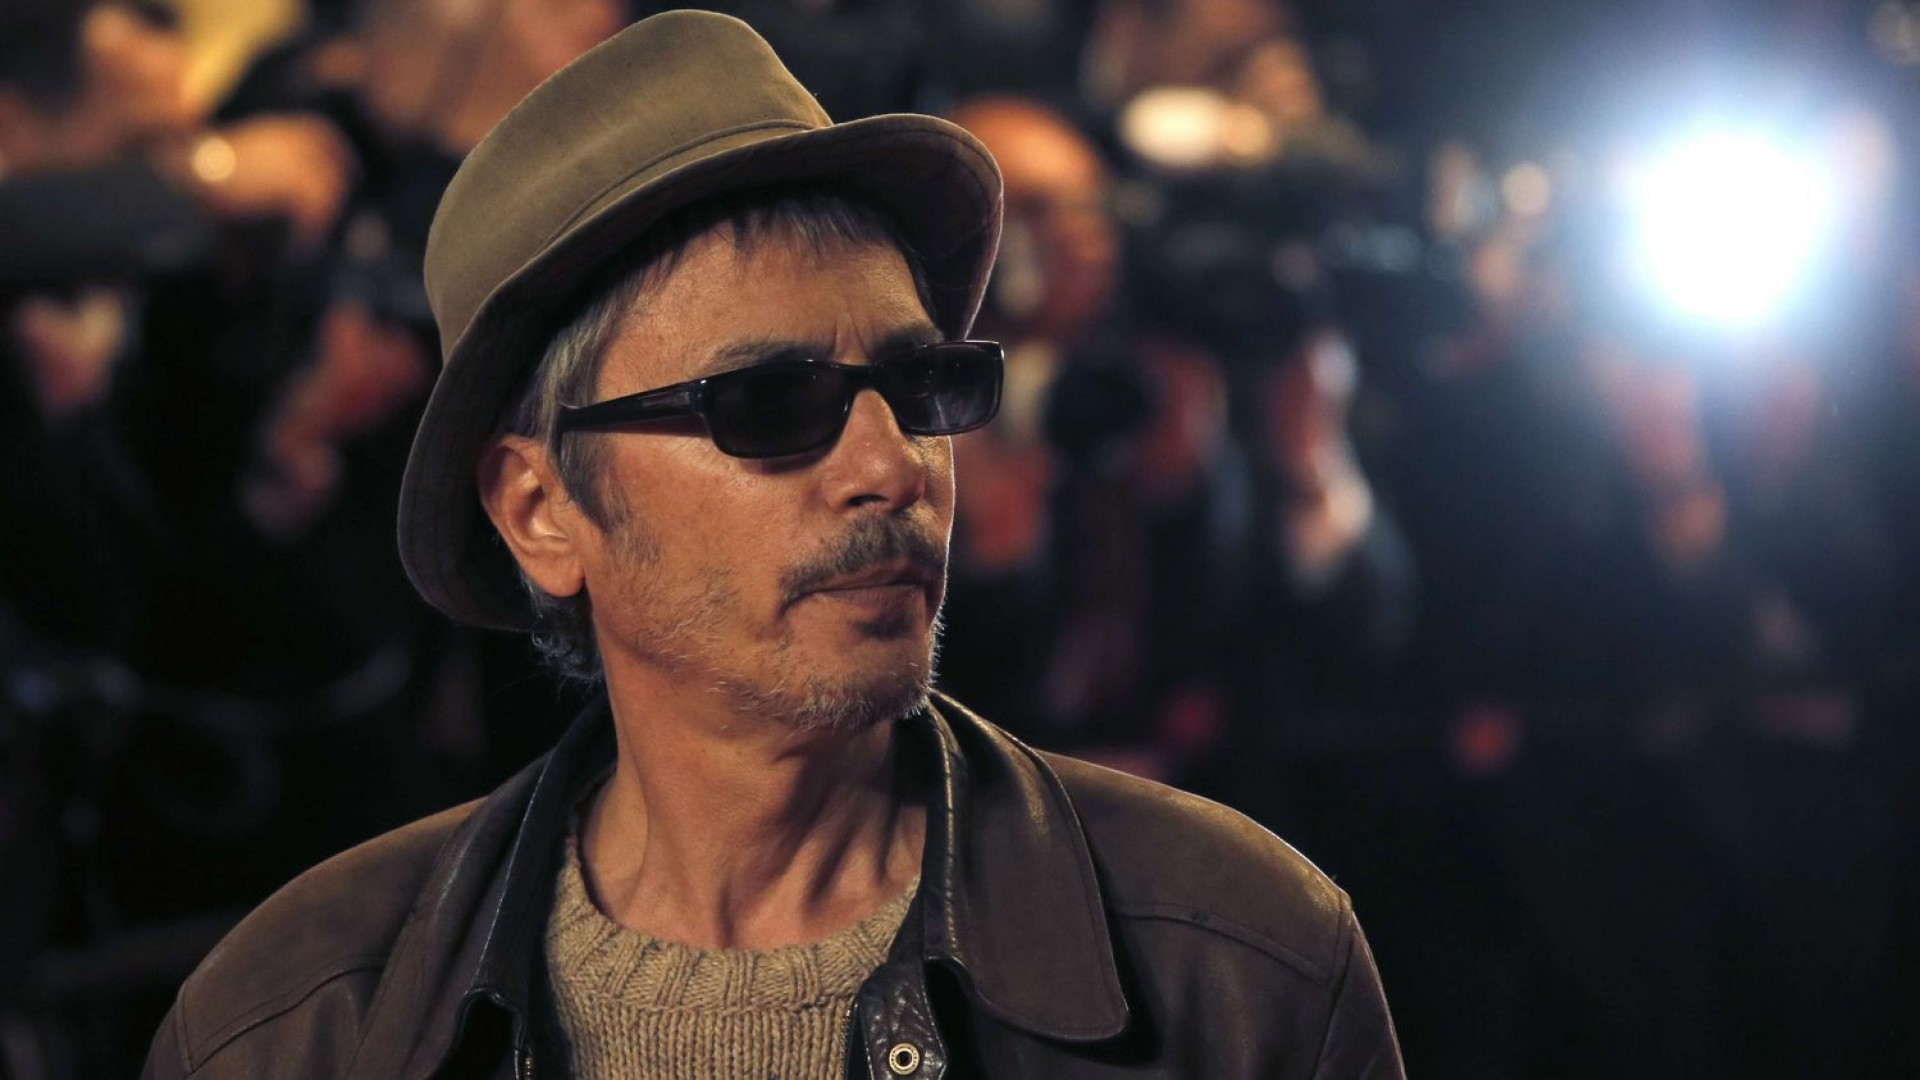 """Leos Carax : """"Films become alive when you spill your doubts and fears into them"""" - CG"""